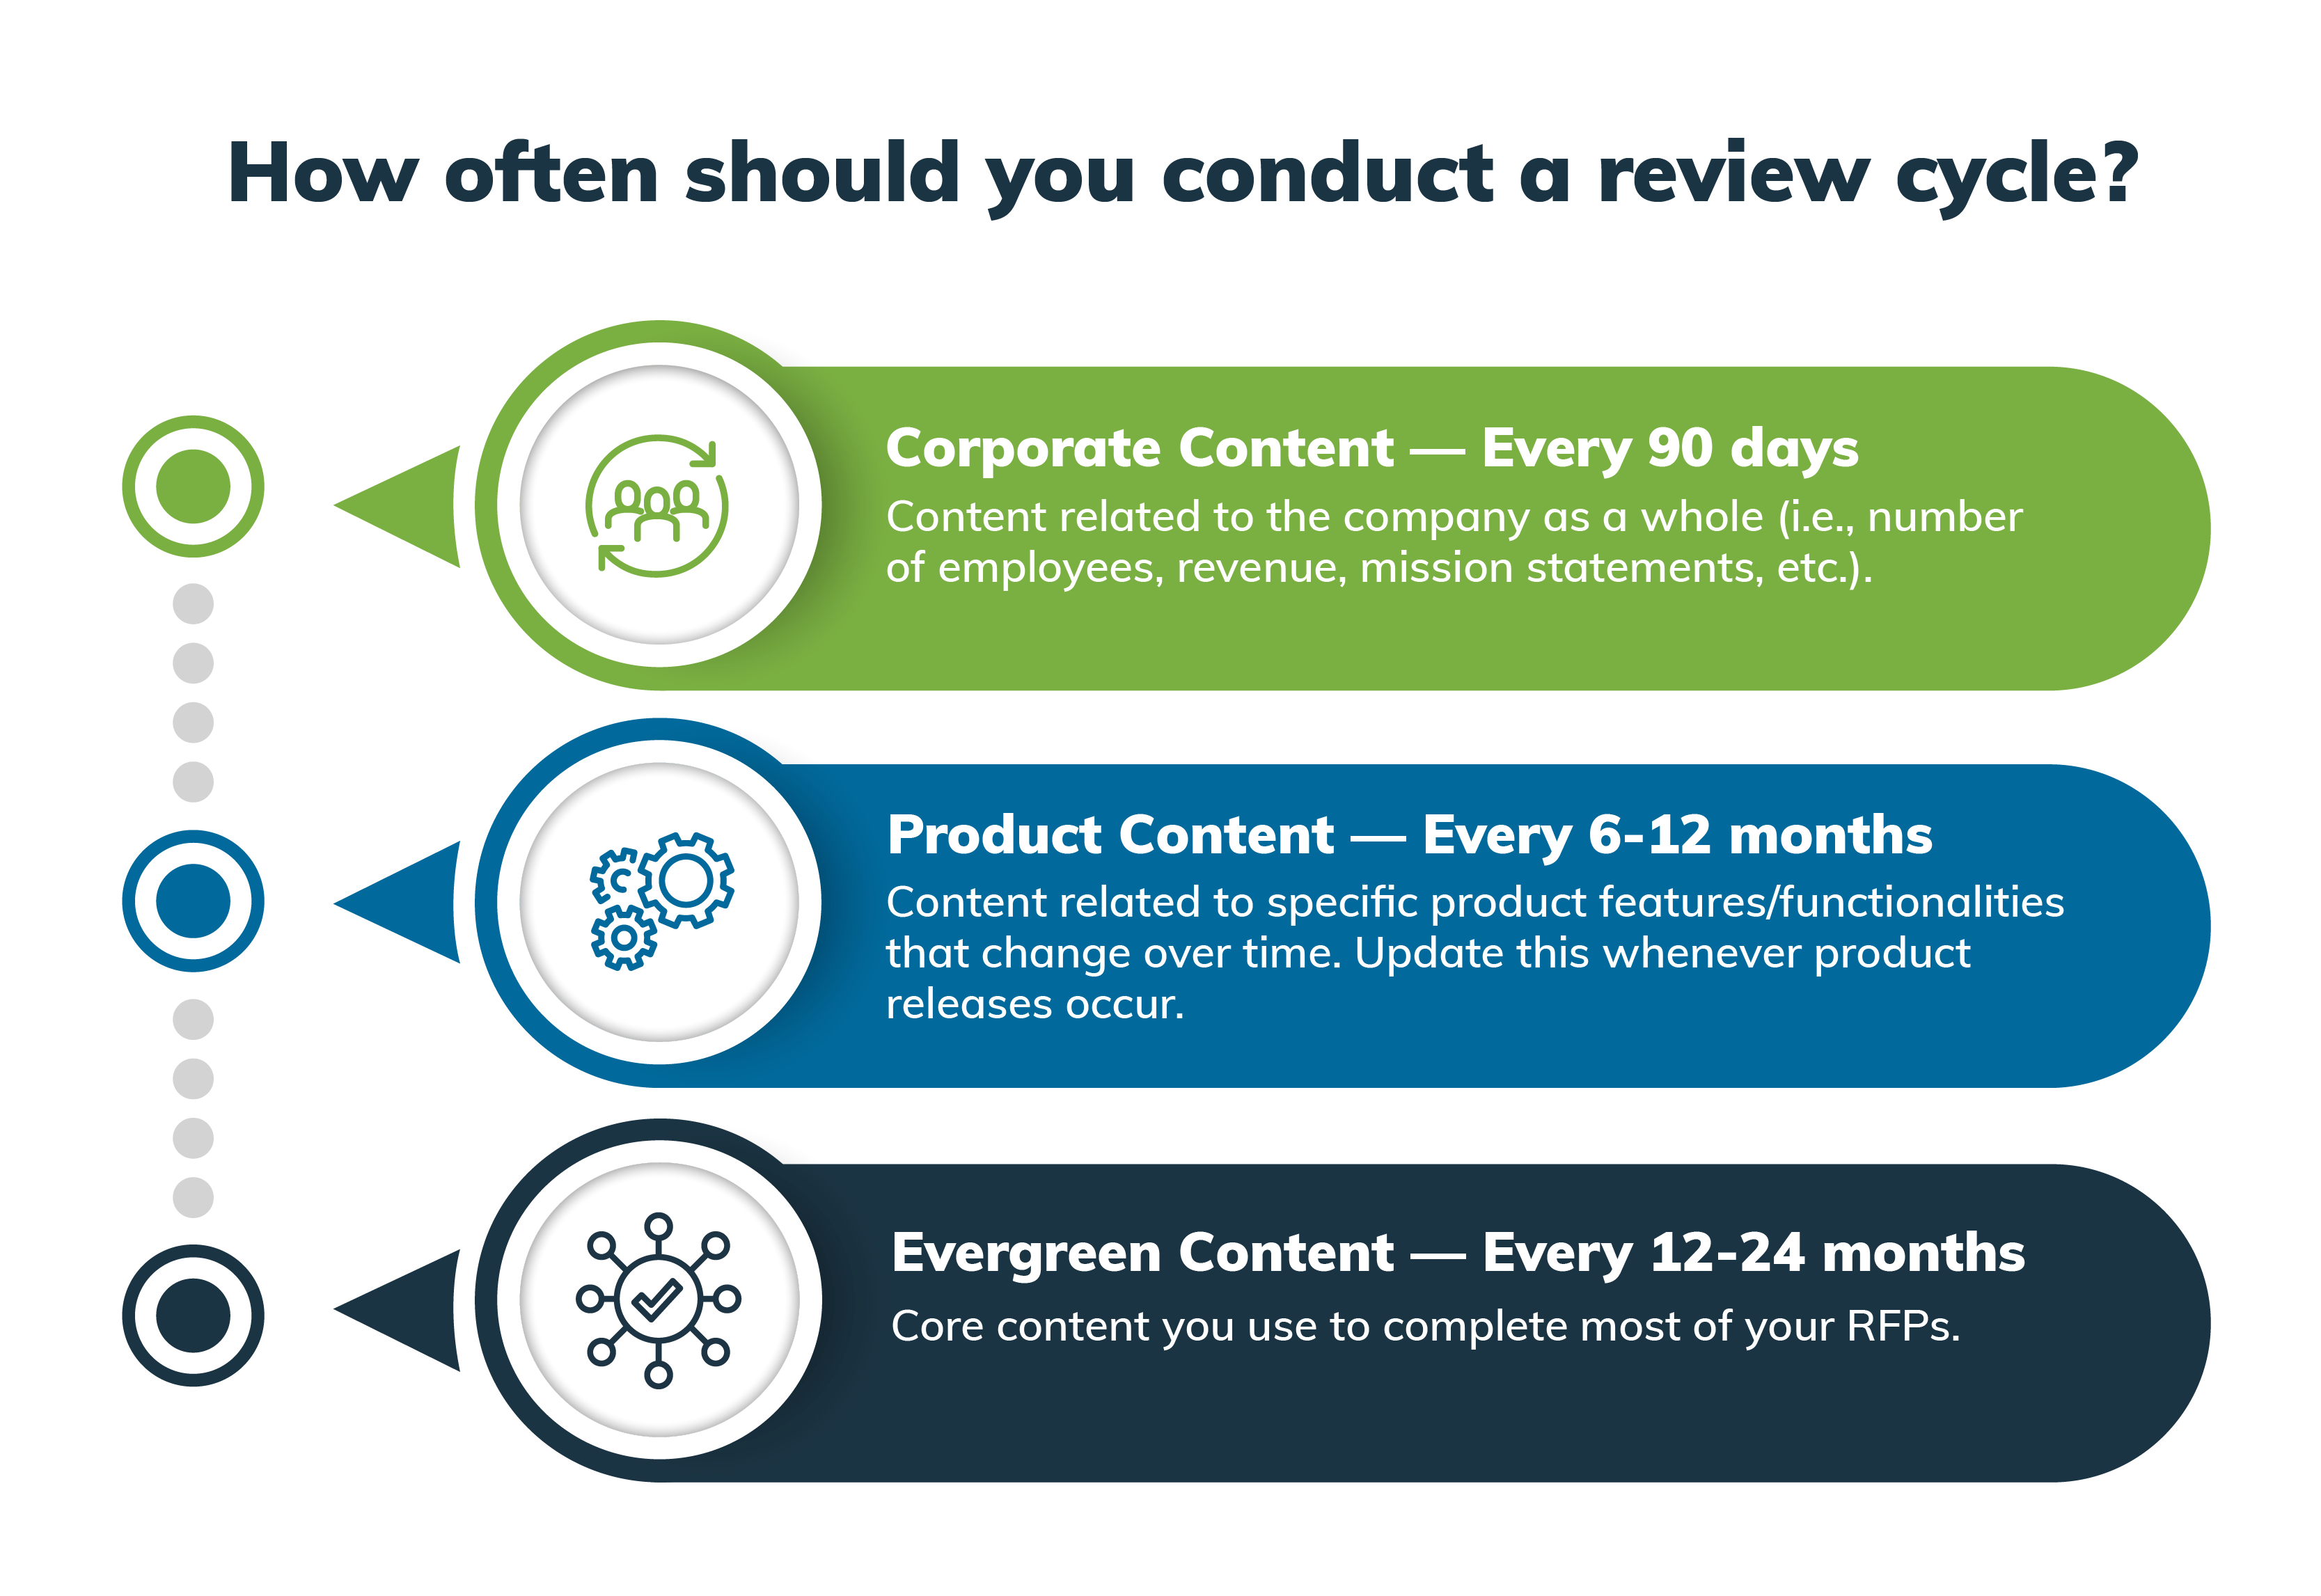 How often should you conduct a review cycle? It depends on the content.